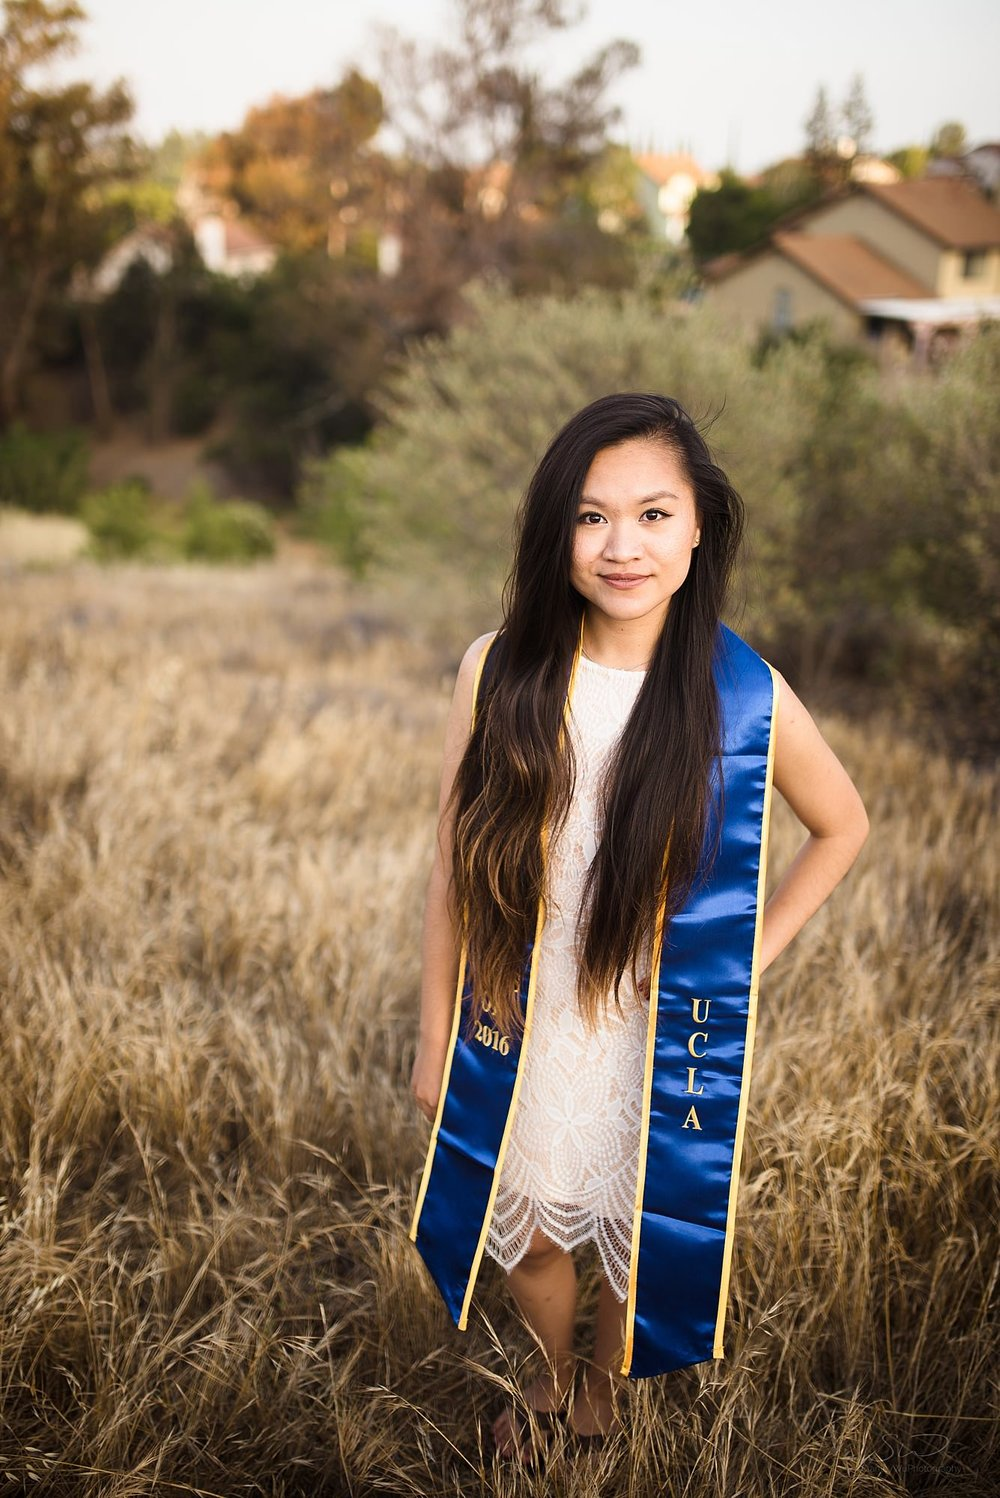 beautiful graduation senior portrait of a girl standing among wheat colored grass in san fernando valley in los angeles